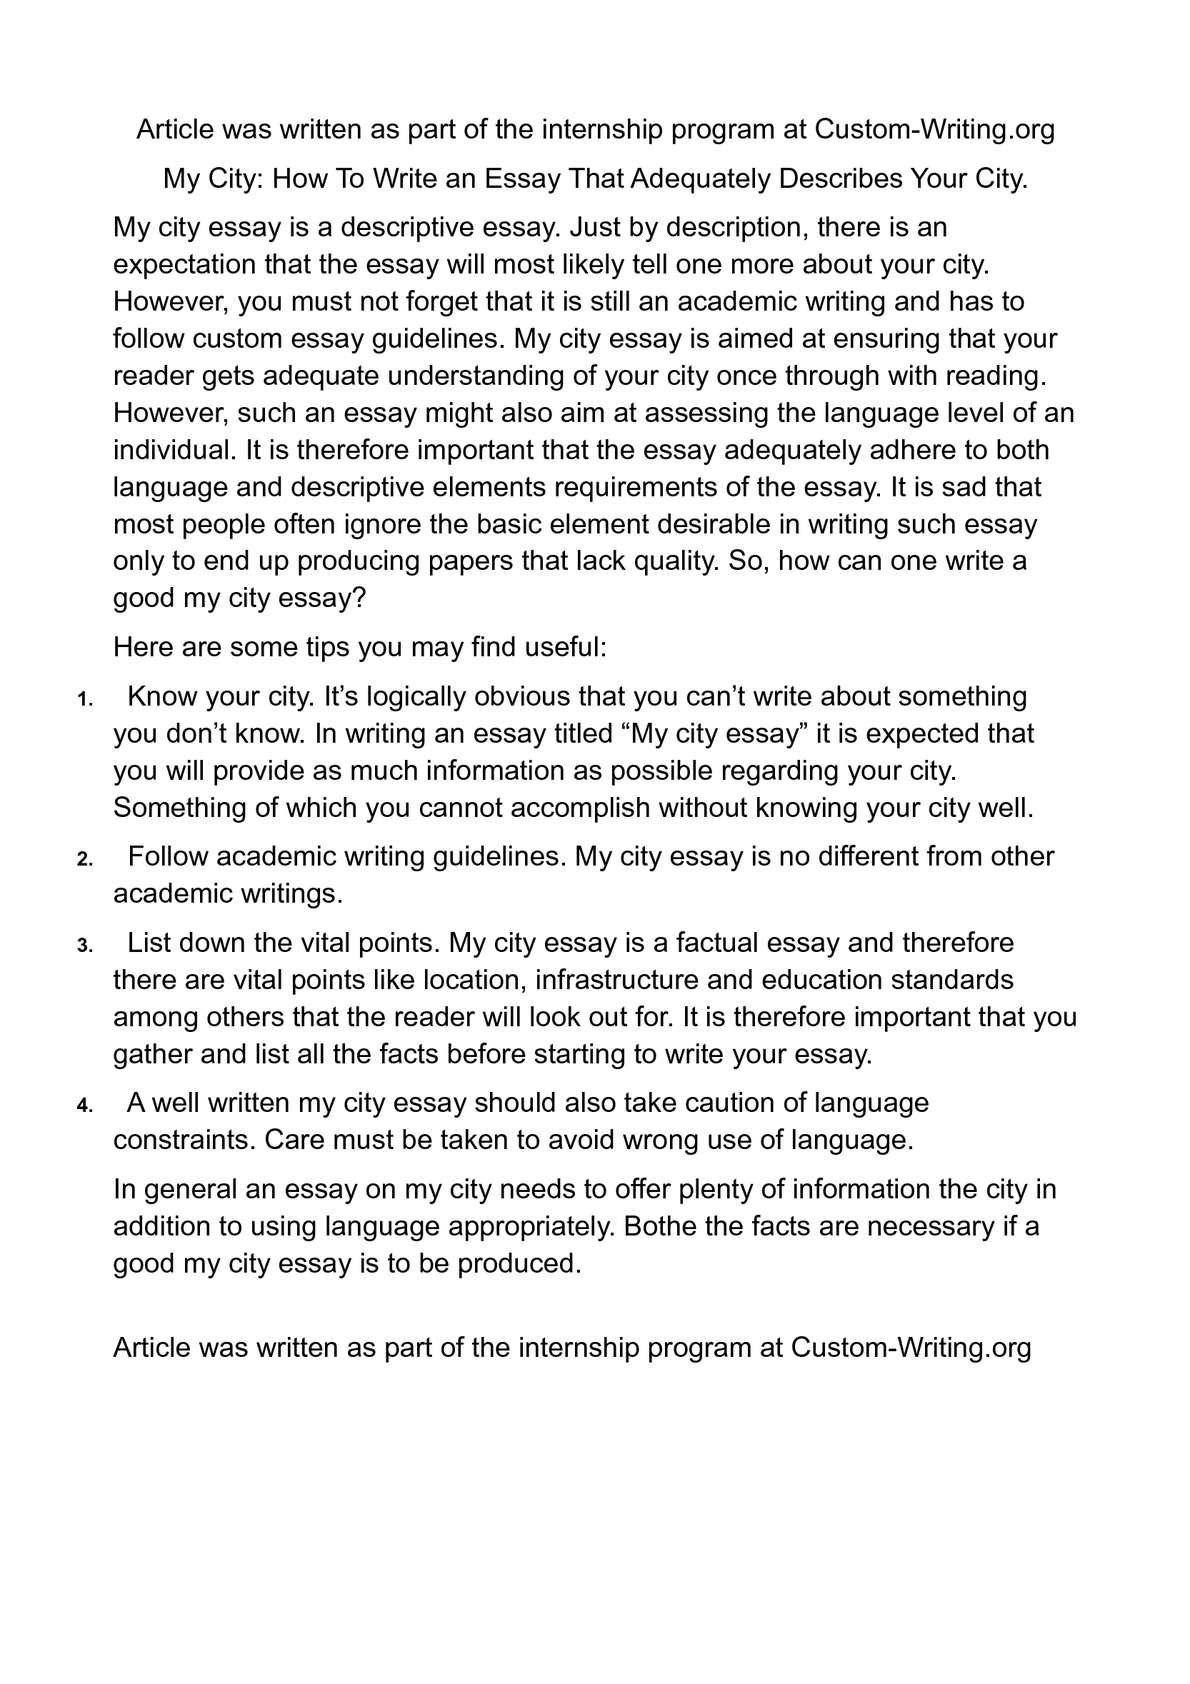 good descriptive essays calam atilde copy o my city how to write  calam atilde copy o my city how to write an essay that adequately describes calamatildecopyo my